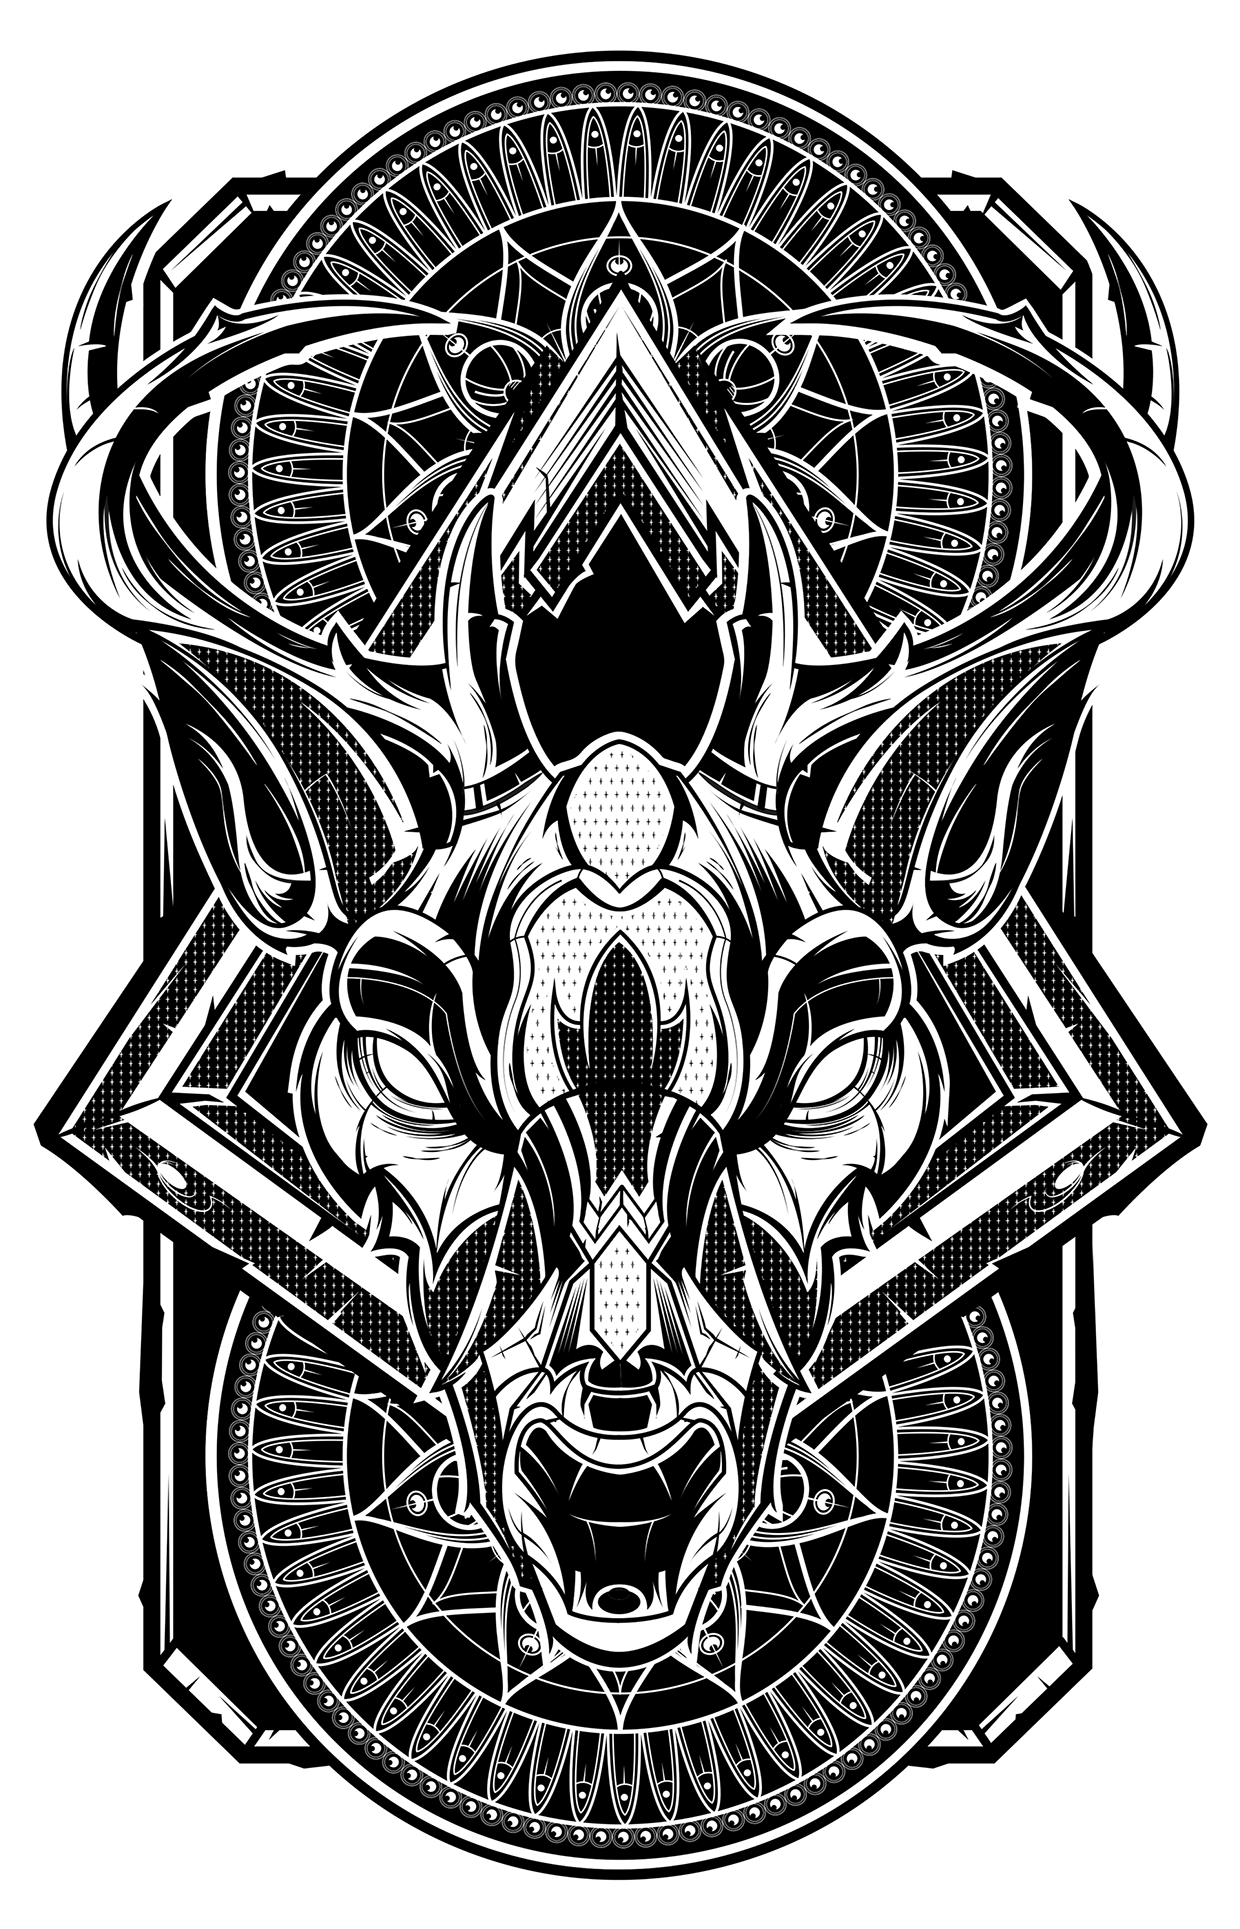 Oh Deer (With images) Android wallpaper, Typographic